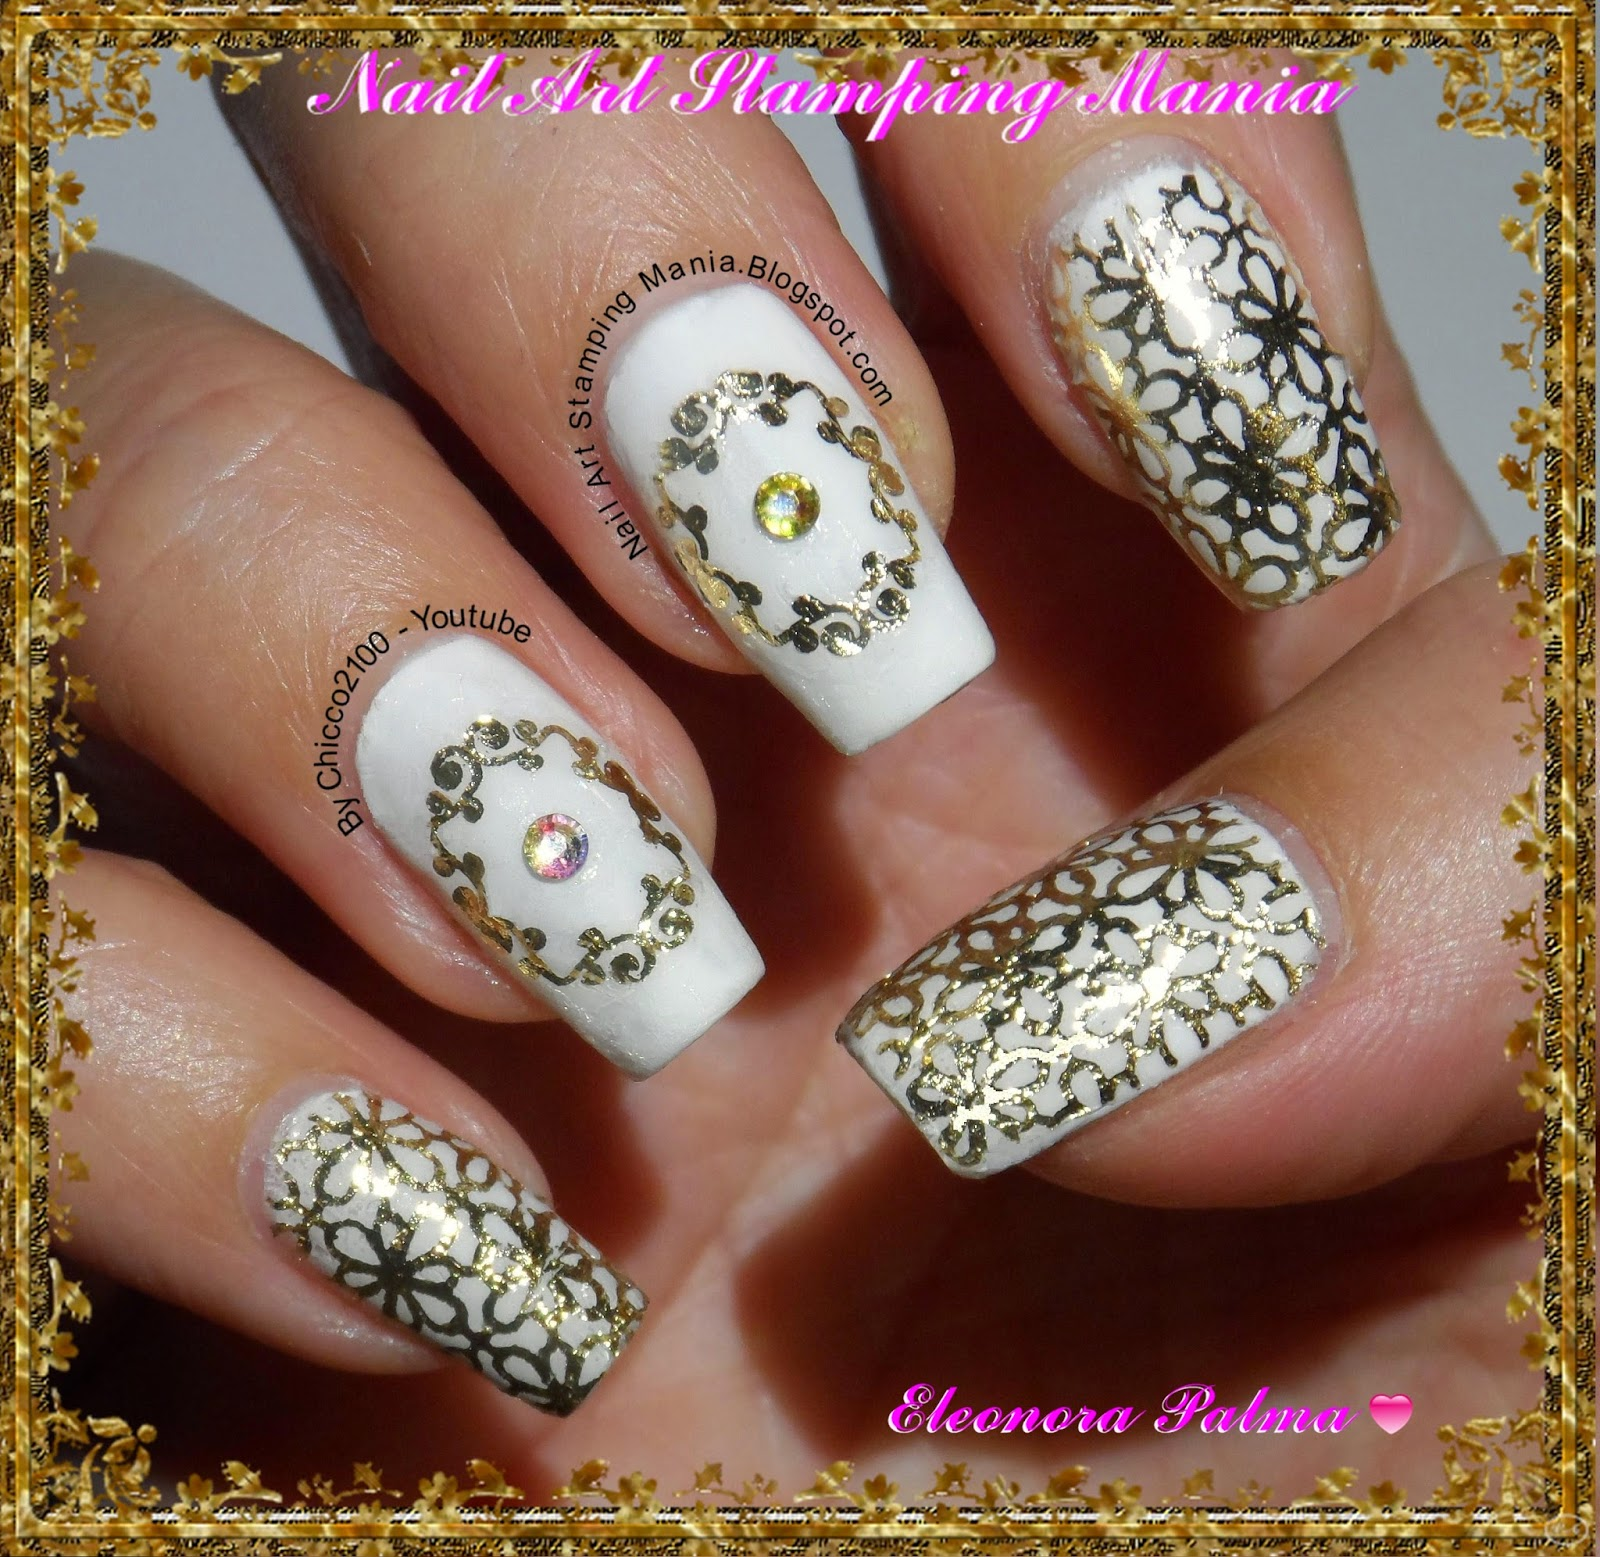 Nail Art Stamping Mania: Stamping With Foil And QA Plates